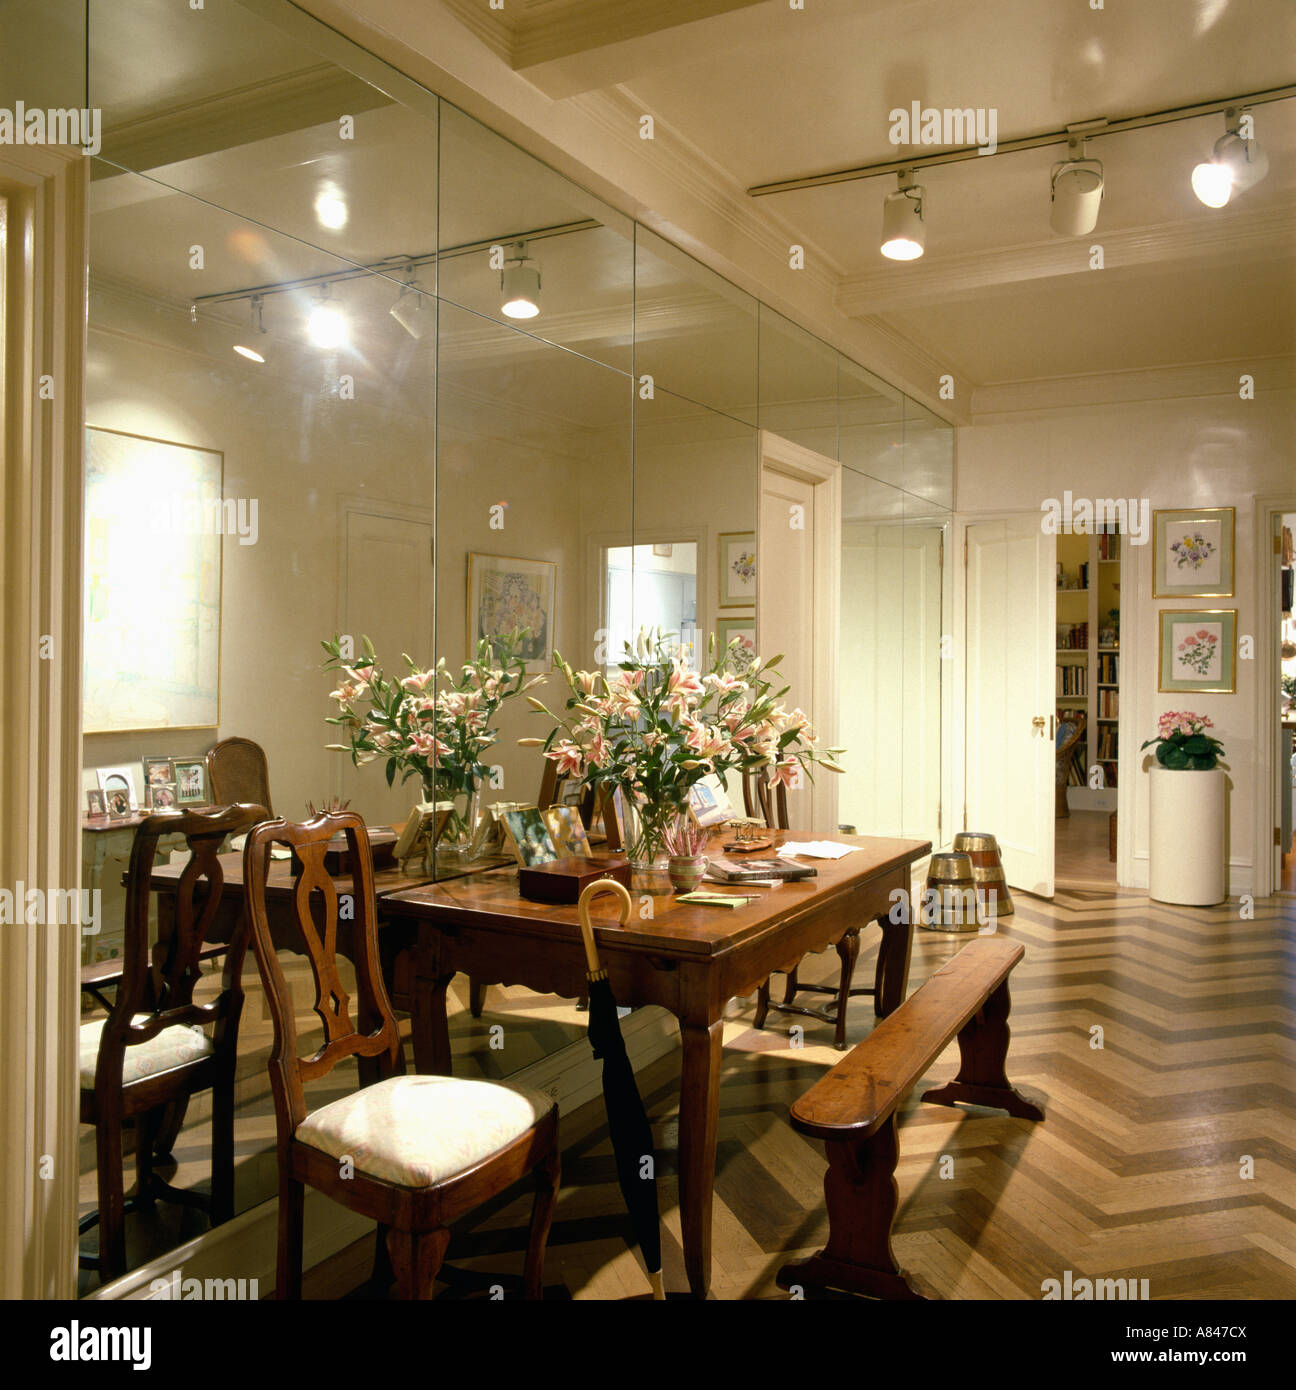 Antique wooden bench and dining table in hall with ceiling ...